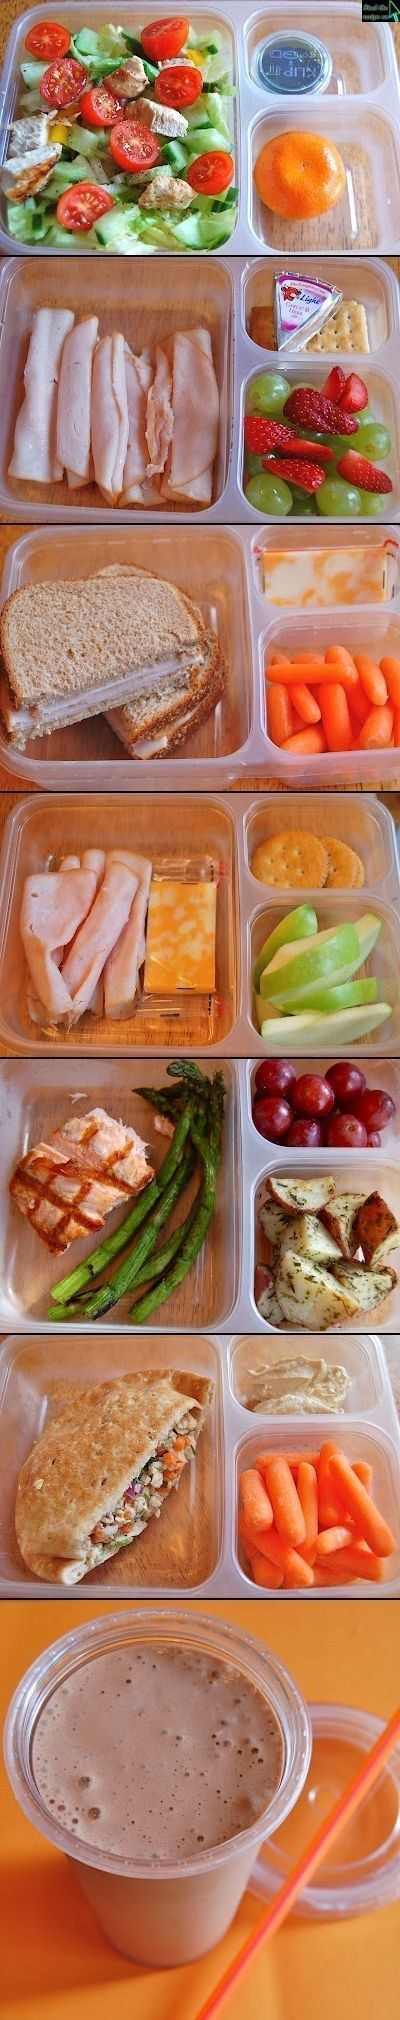 Healthy Lunch Ideas to keep you on track to that perfect body you want